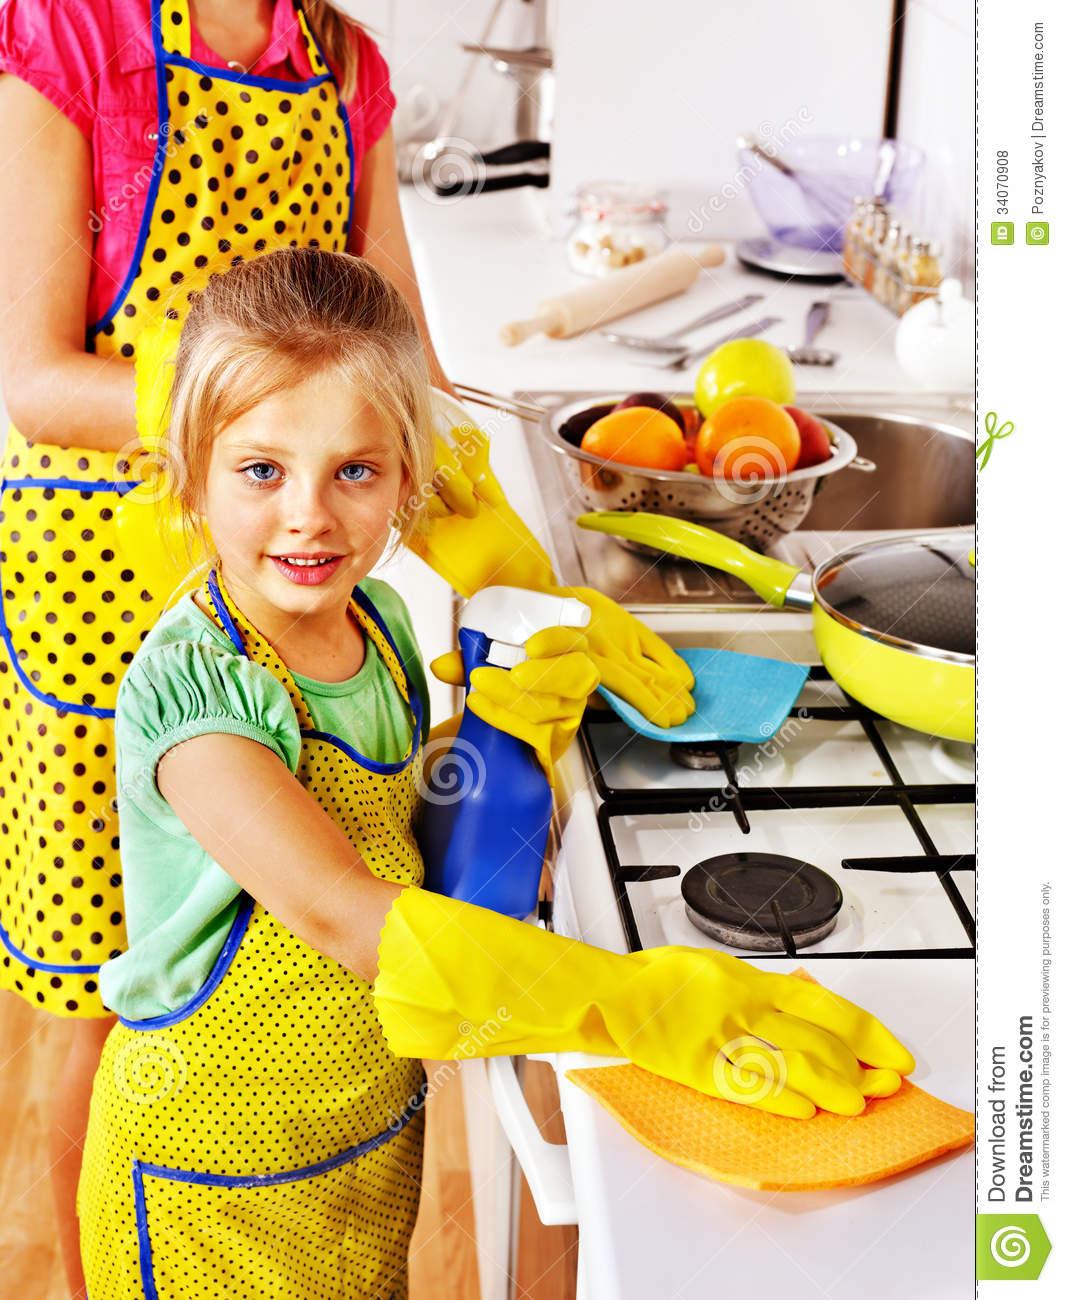 Kitchen Cleaning: Children Cleaning Kitchen. Stock Photo. Image Of Home